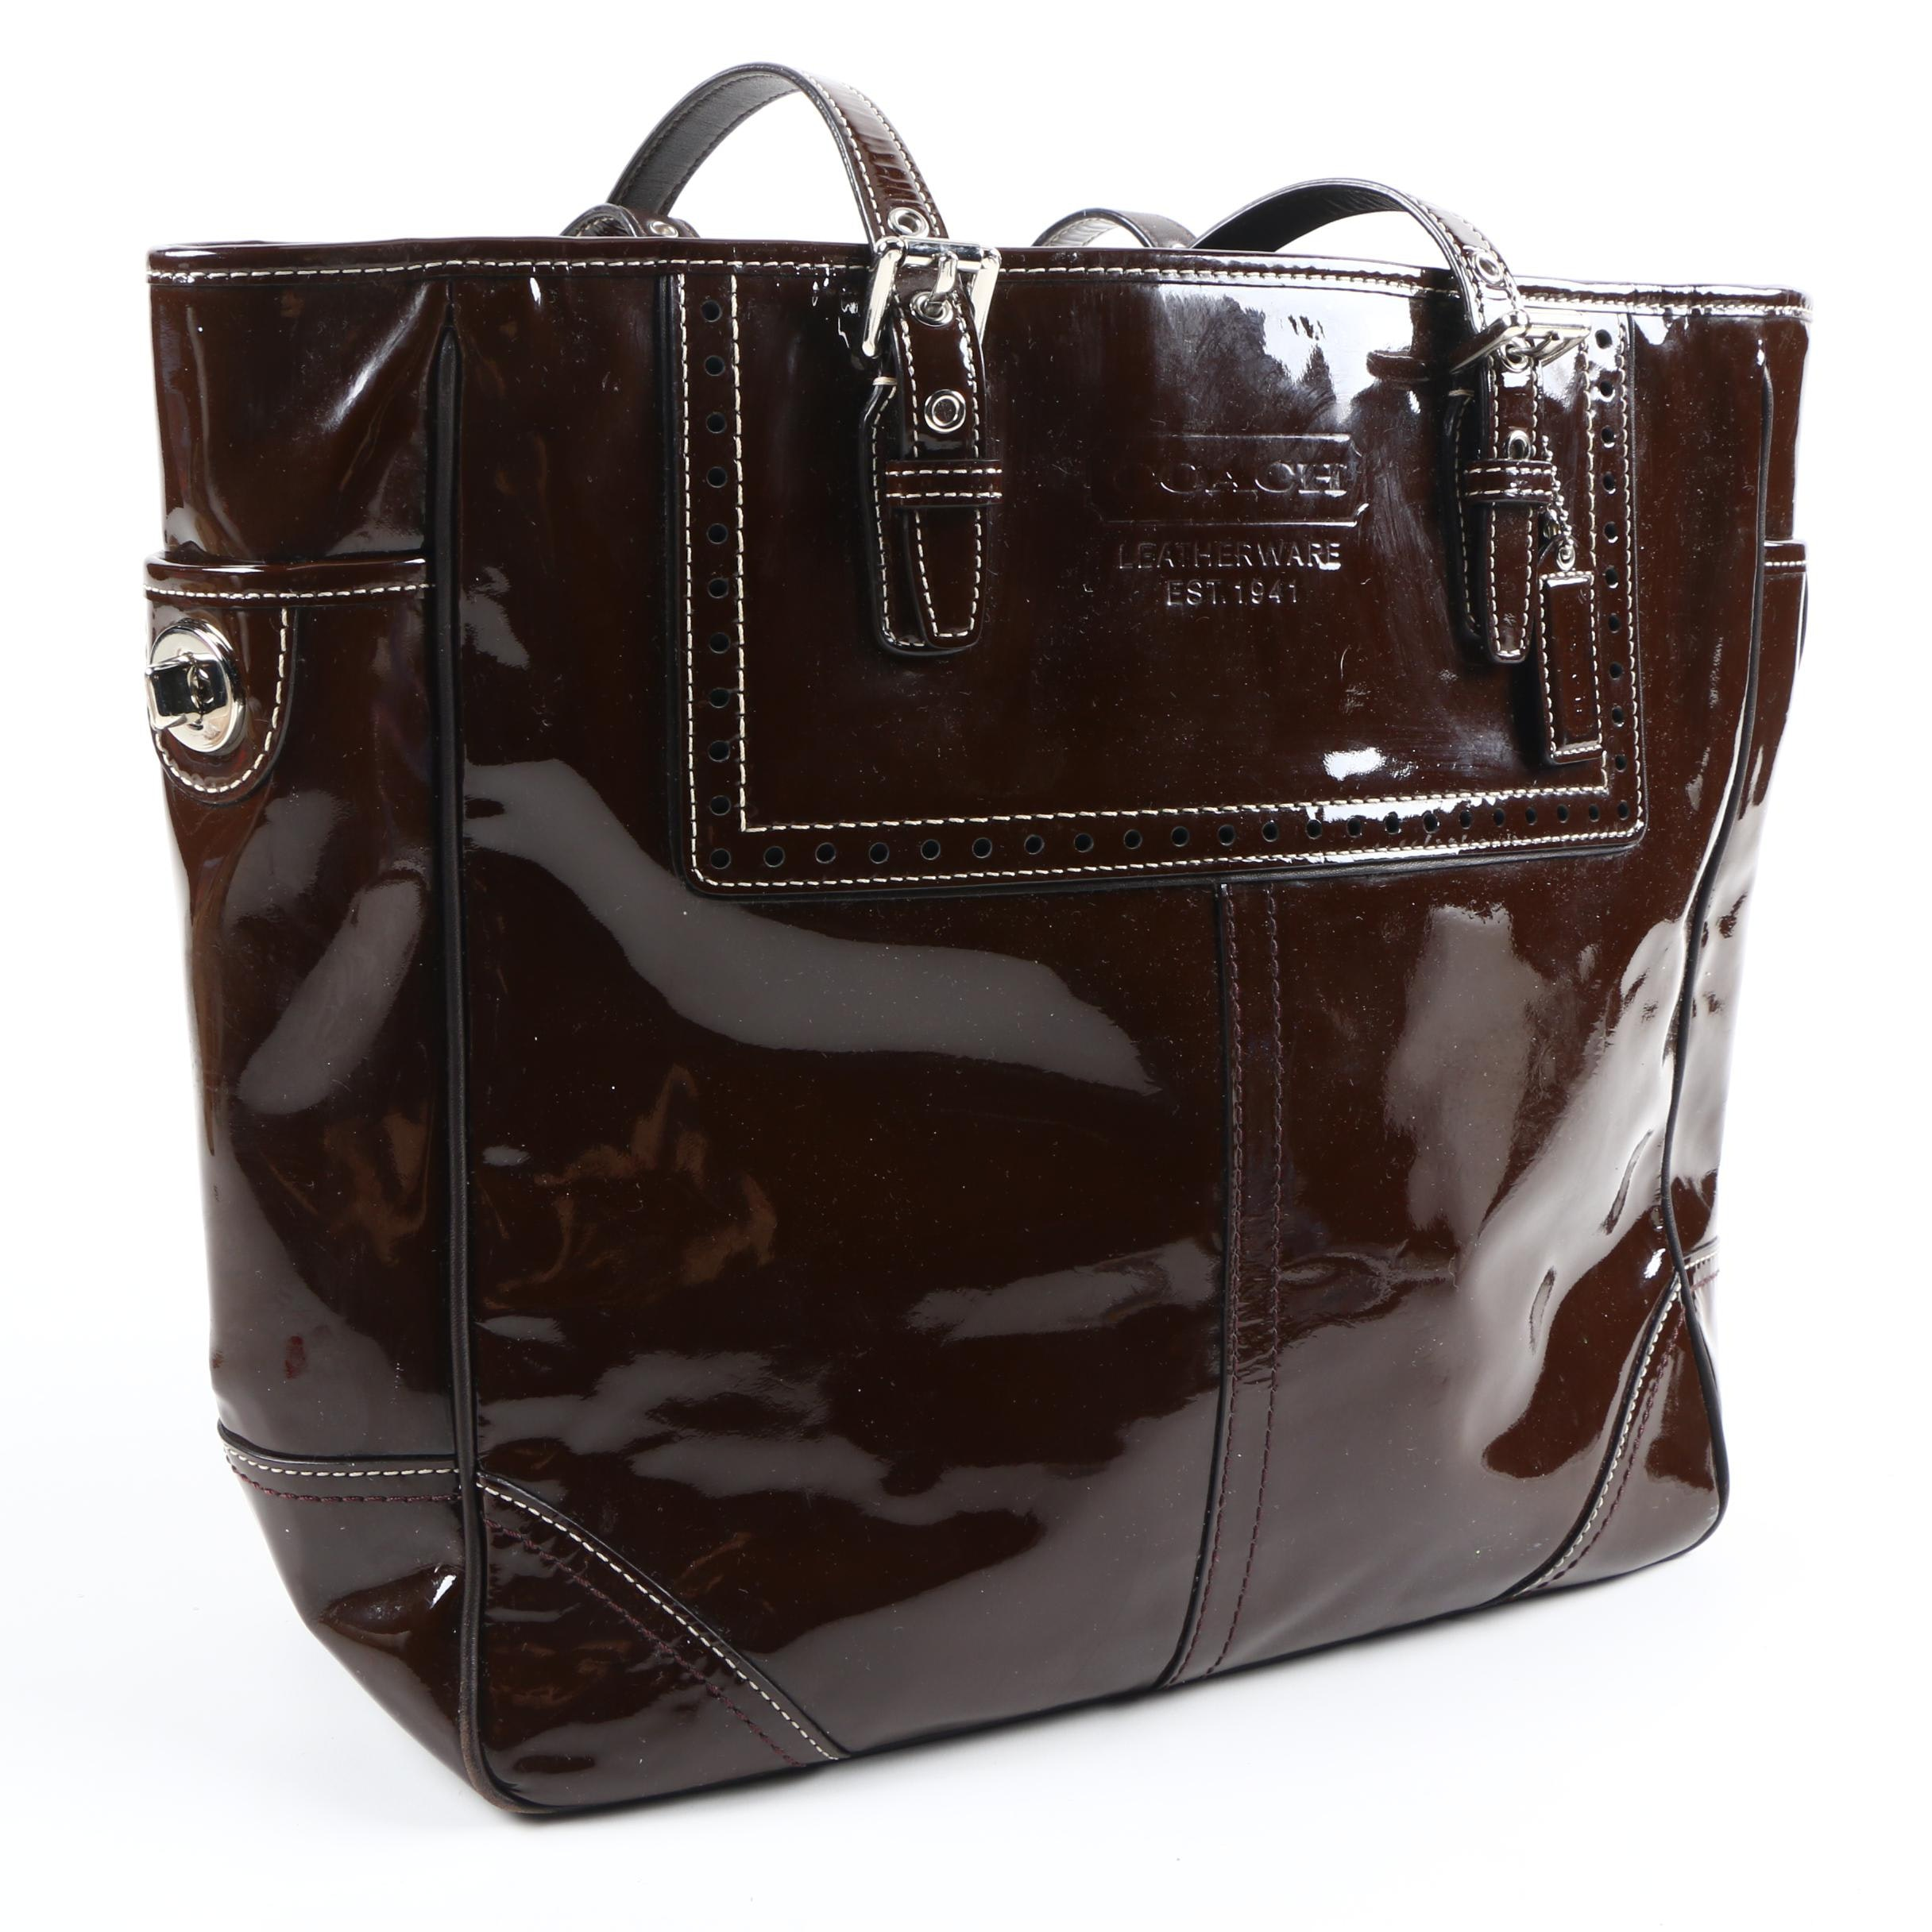 Coach Patent Leather Gallery Tote Bag